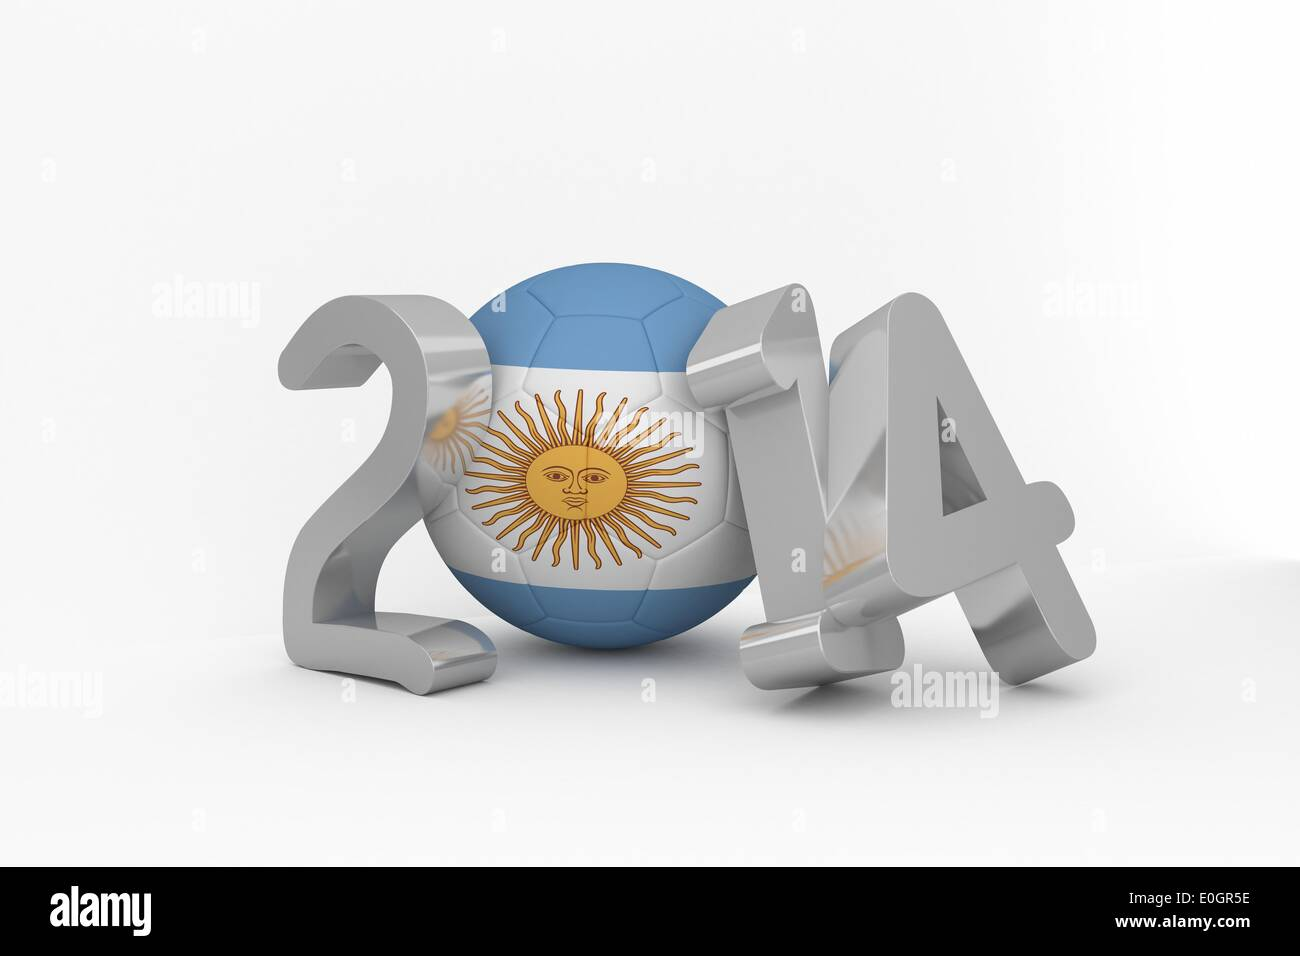 Argentina world cup 2014 - Stock Image